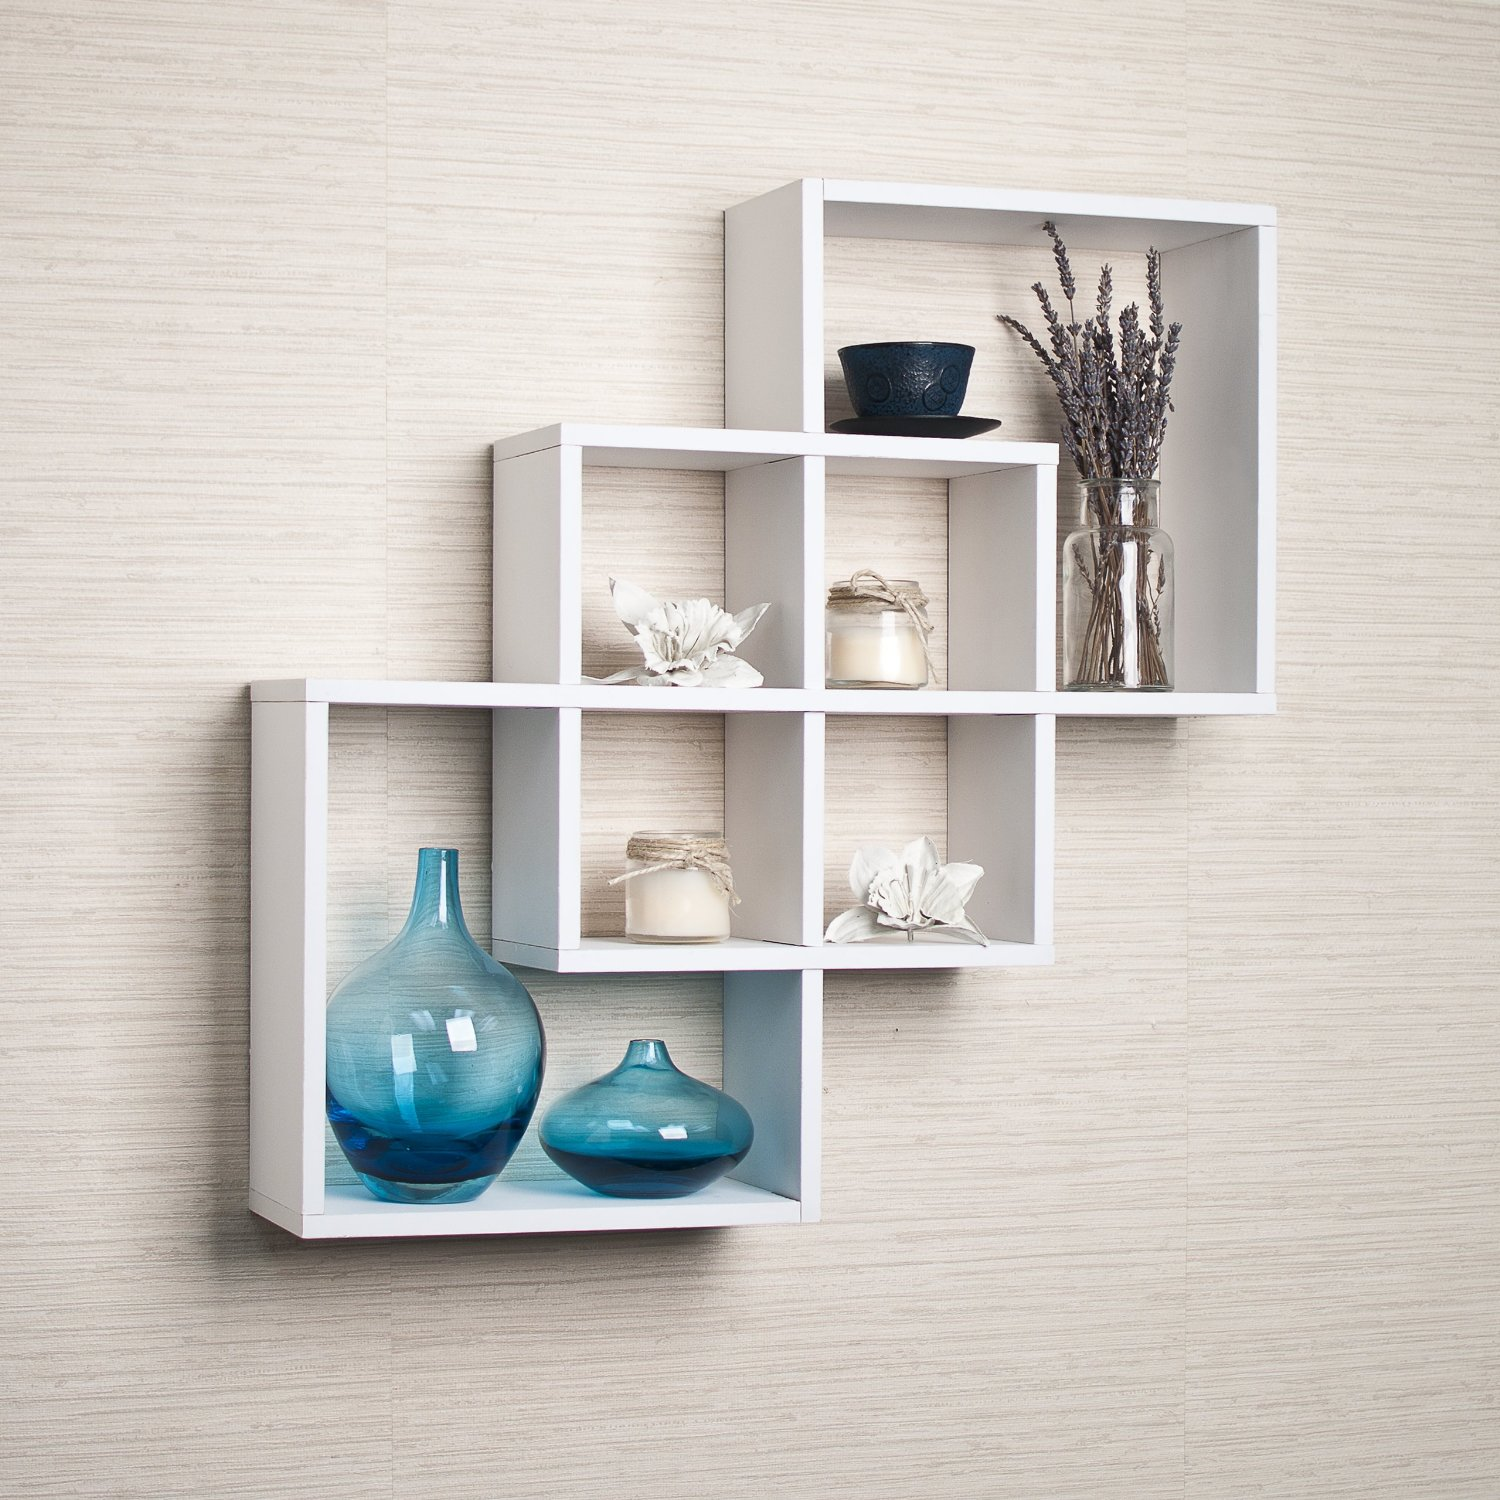 Top 15 floating wooden square wall shelves to buy online amipublicfo Gallery